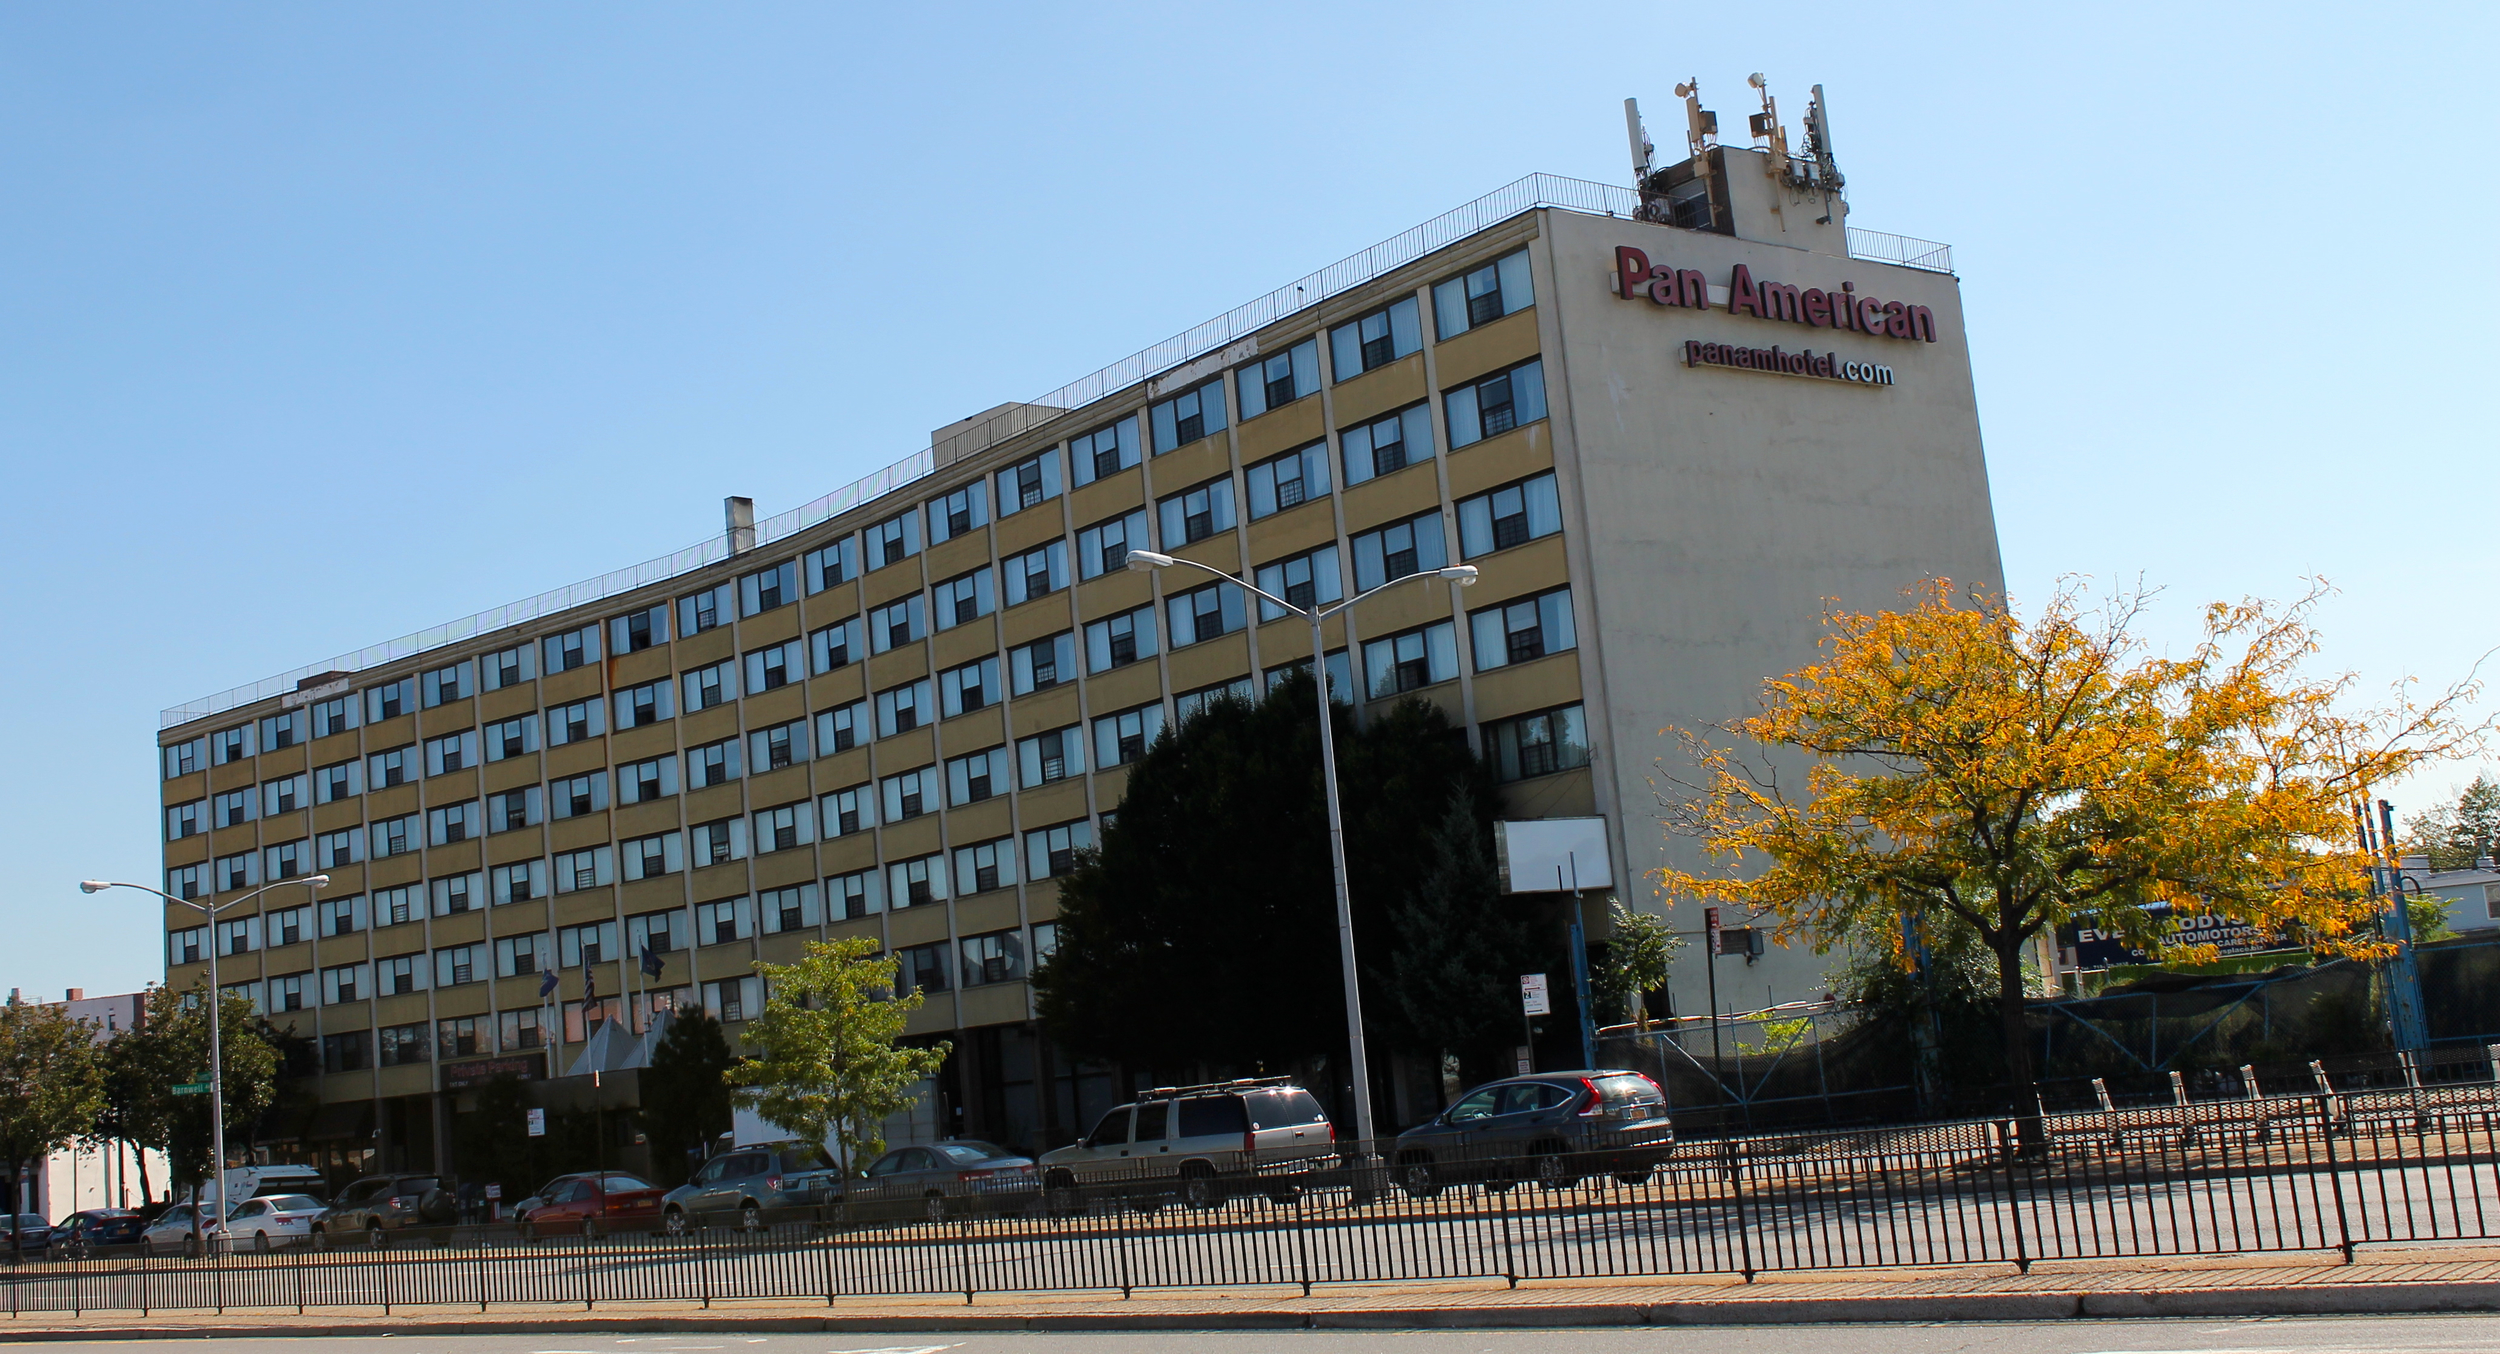 The  Pan American Hotel  on Queens Boulevard in Elmhurst, Queens. The hotel was converted into a shelter that has been cited with many code violations. Opponents of the rapid expansion of homeless shelters in Queens have used the issue of code violations to call for the closure of the Pan Am shelter. Meanwhile,critics of Mayor  Bill de Blasio  have used code violations at city-financed shelters to embarrass the mayor. Caught in the middle are New Yorkers, who lack permanent shelter. Source : Louis Flores/Progress Queens/File Photo (Oct. 2014)